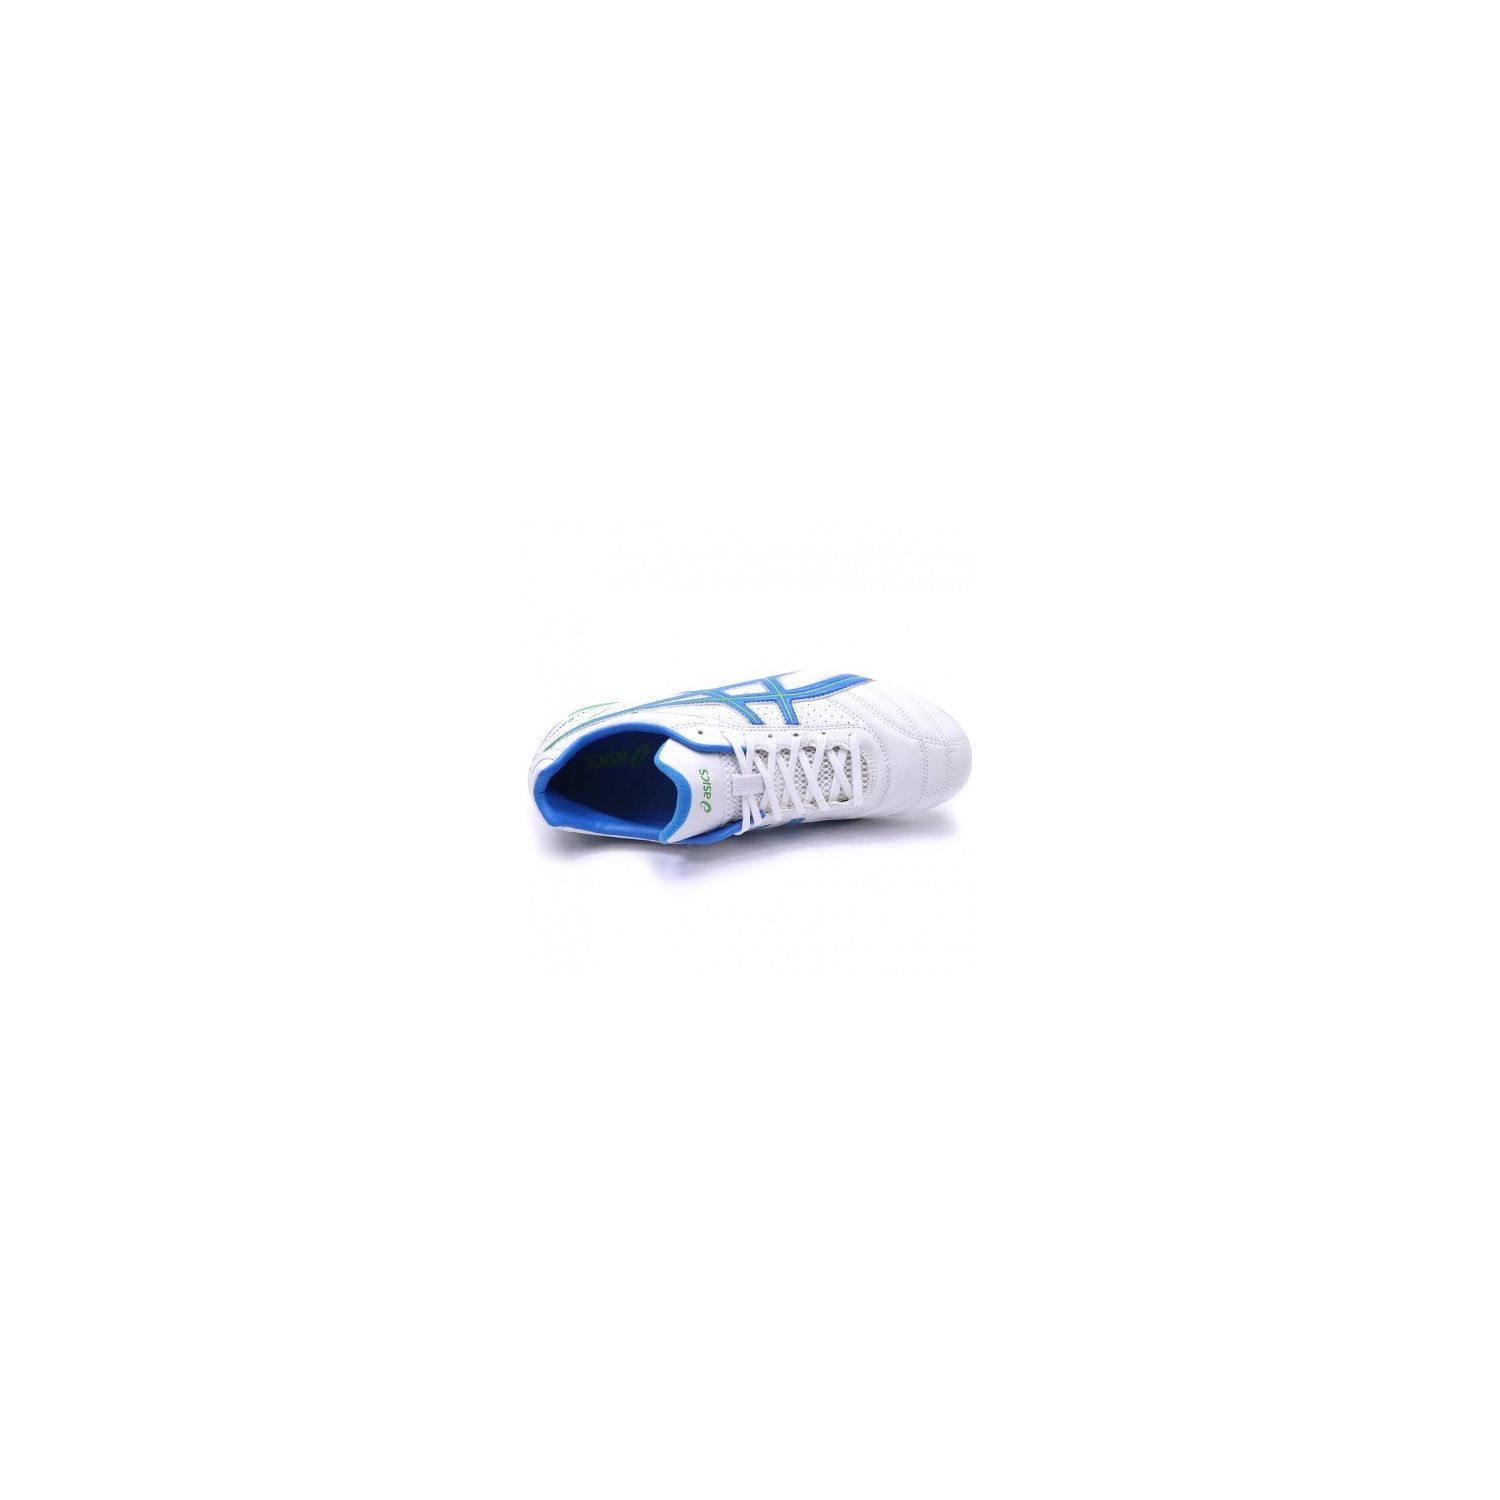 It Flash 2 Lethal Asics Ds Homme Chaussures Rugby Blanc Pas 1qwAffcg